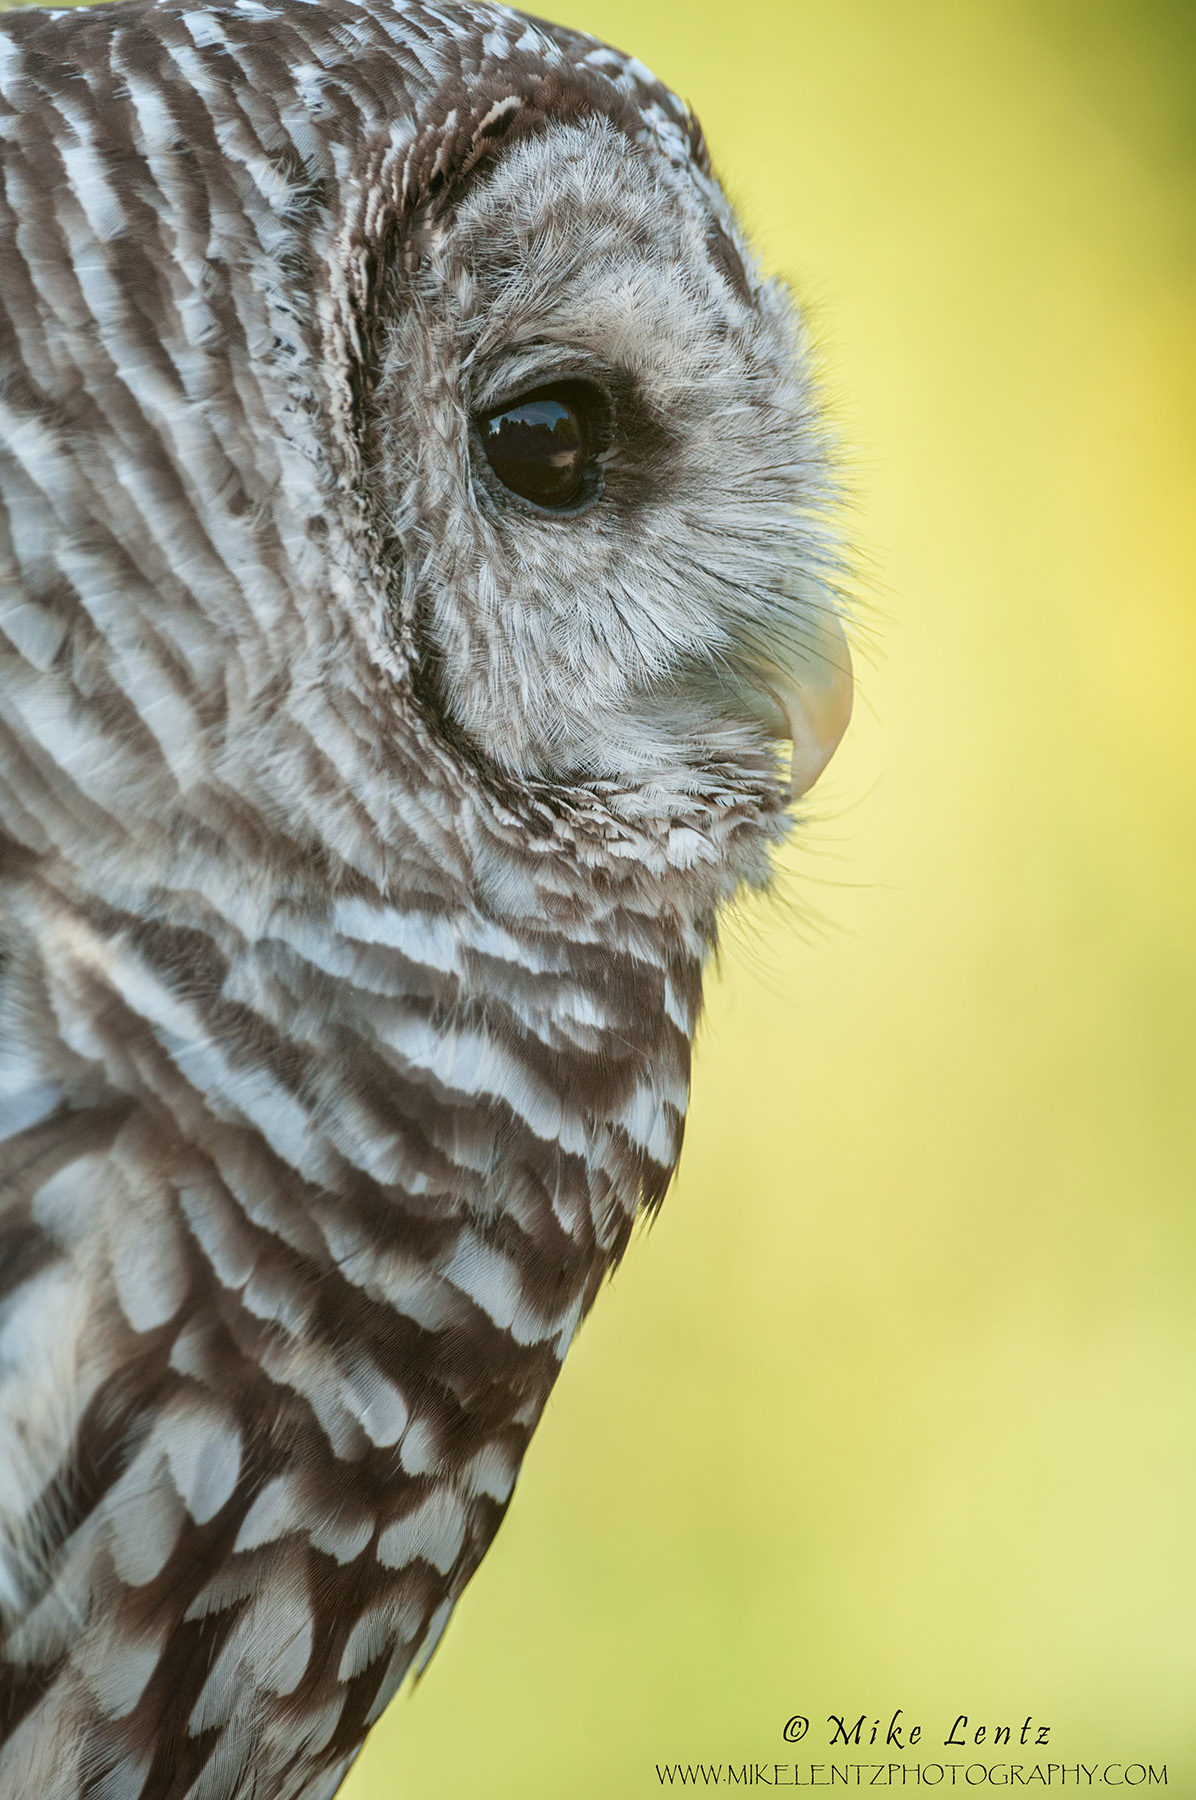 Barred Owl verticle headshot